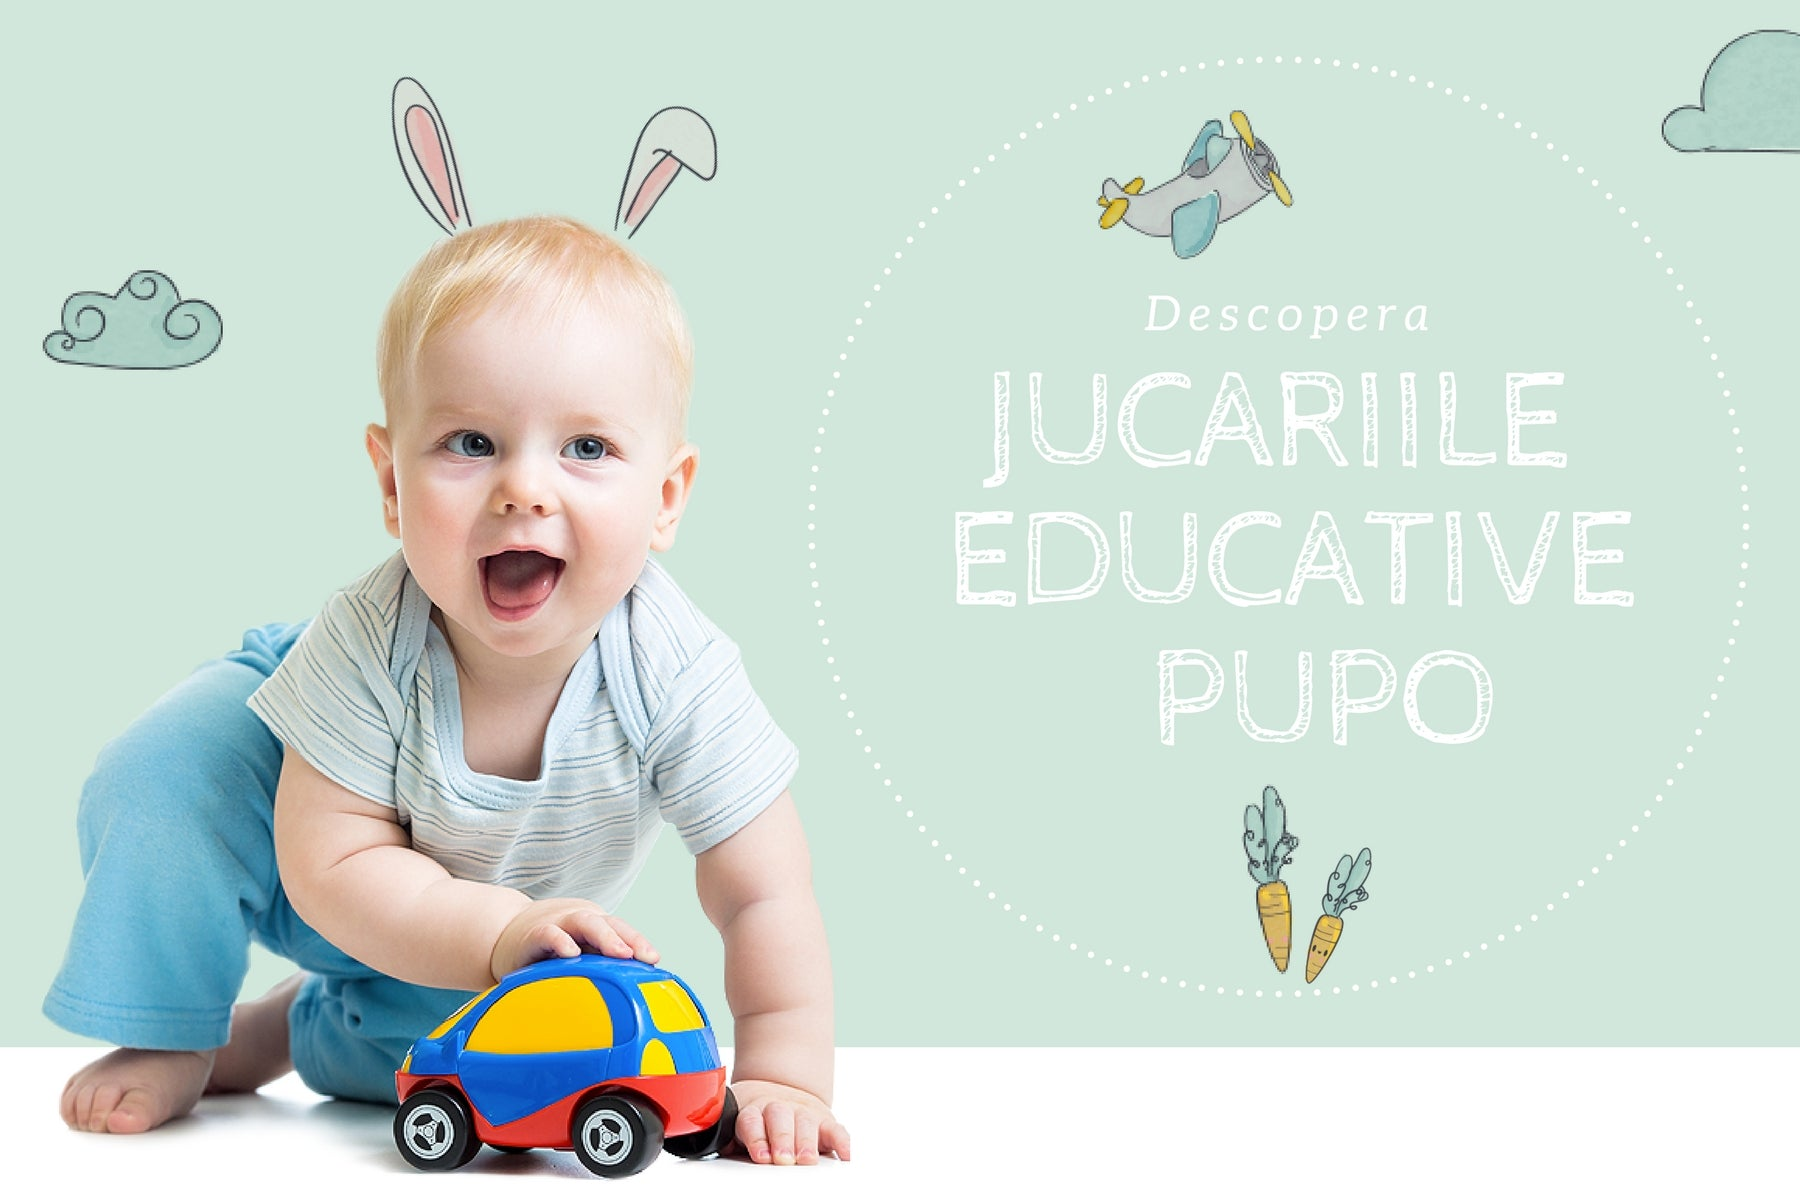 Jucarii educative Pupo